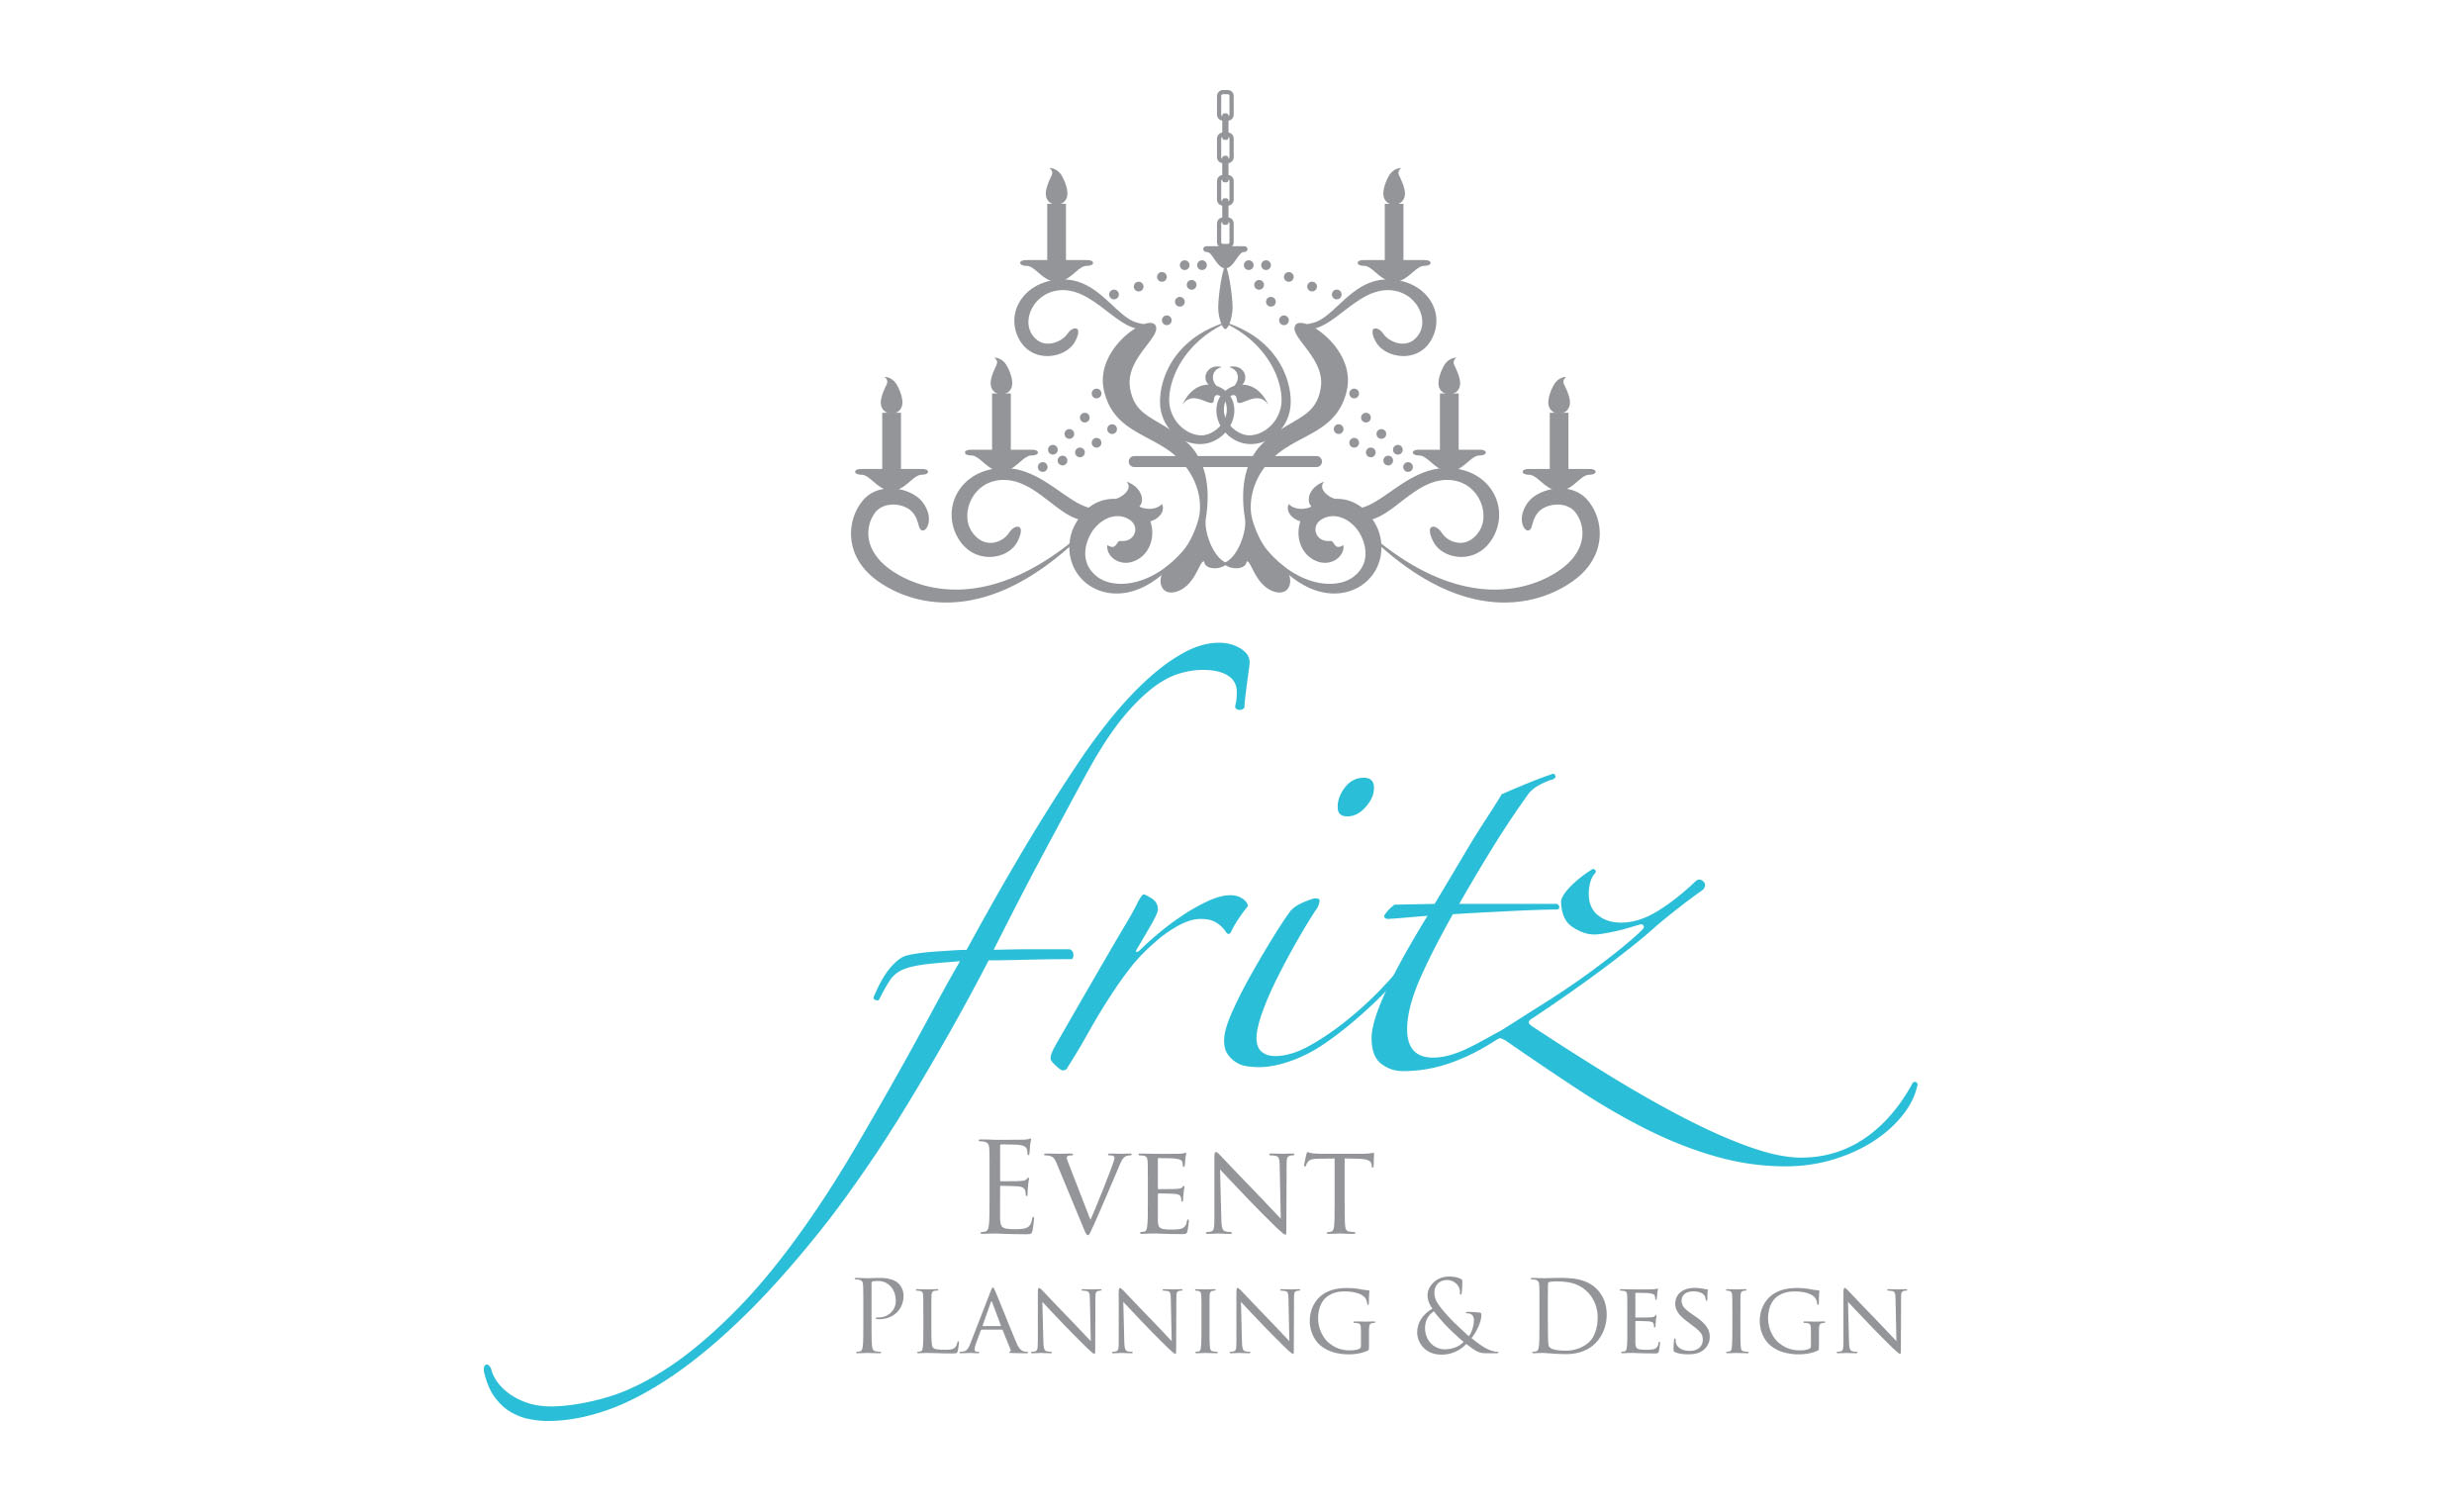 Fritz Event Planning